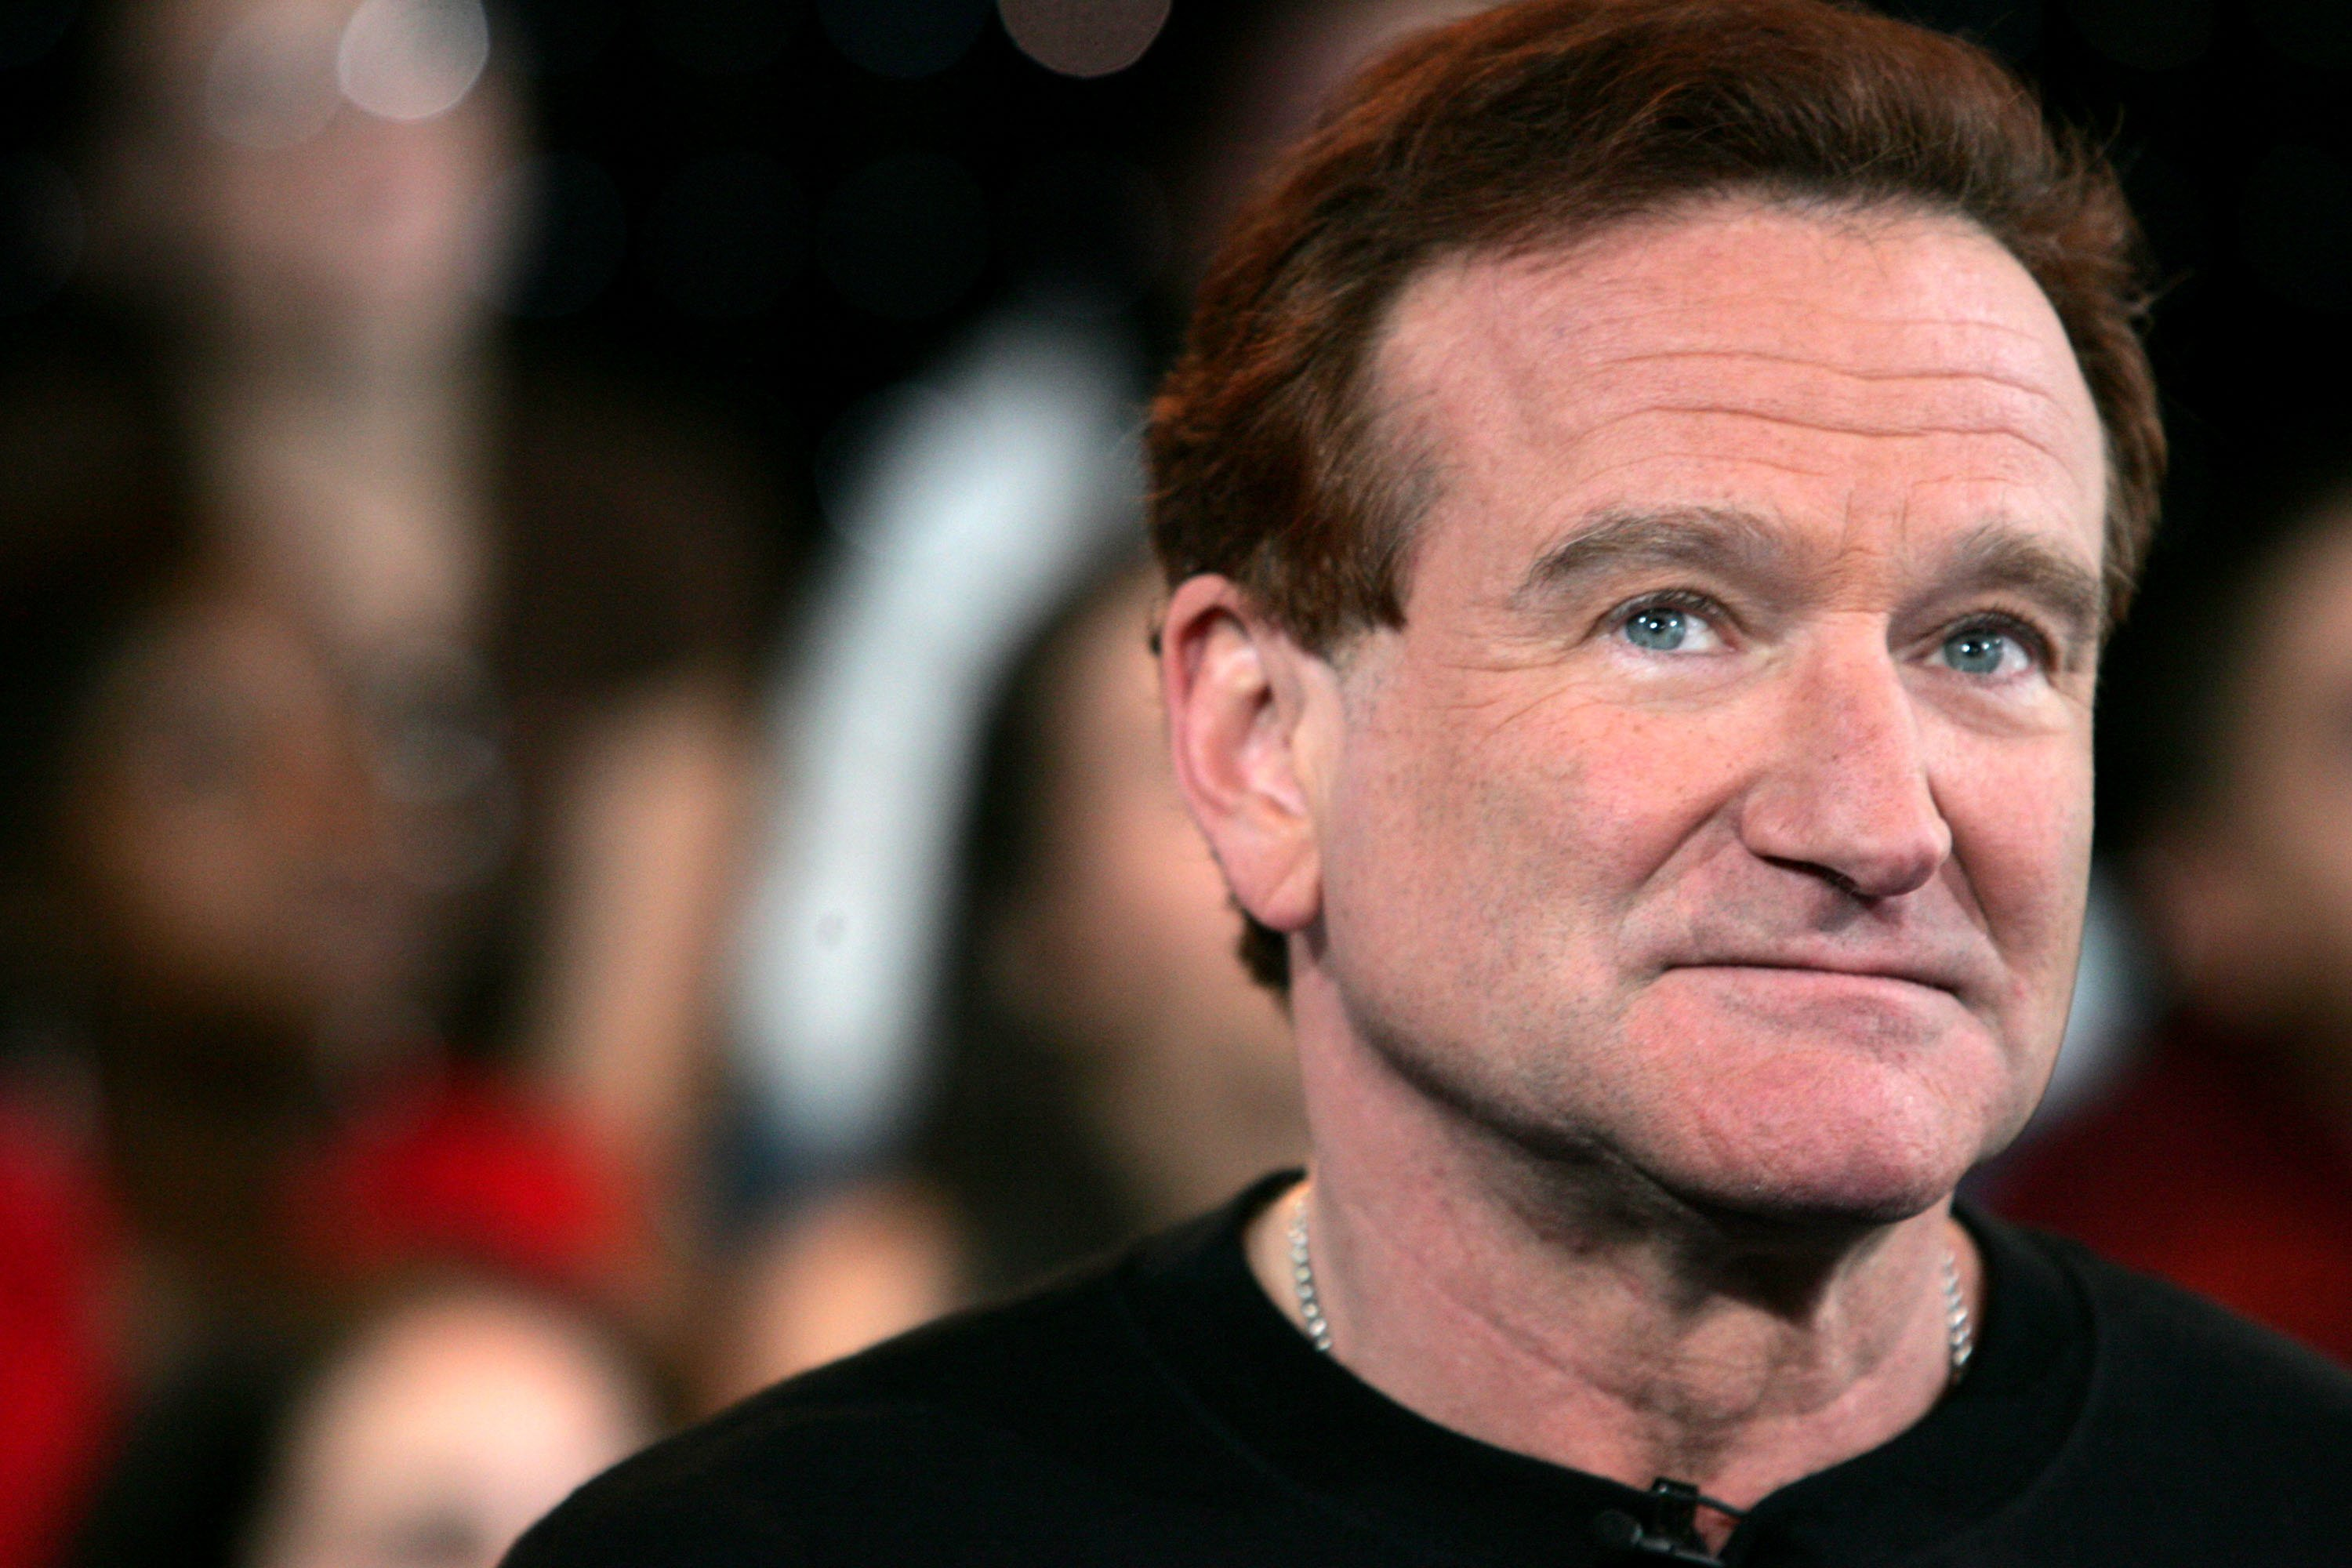 Robin Williams at the MTV's Total Request Livein New York on April 27, 2006 | Source: Getty Inages